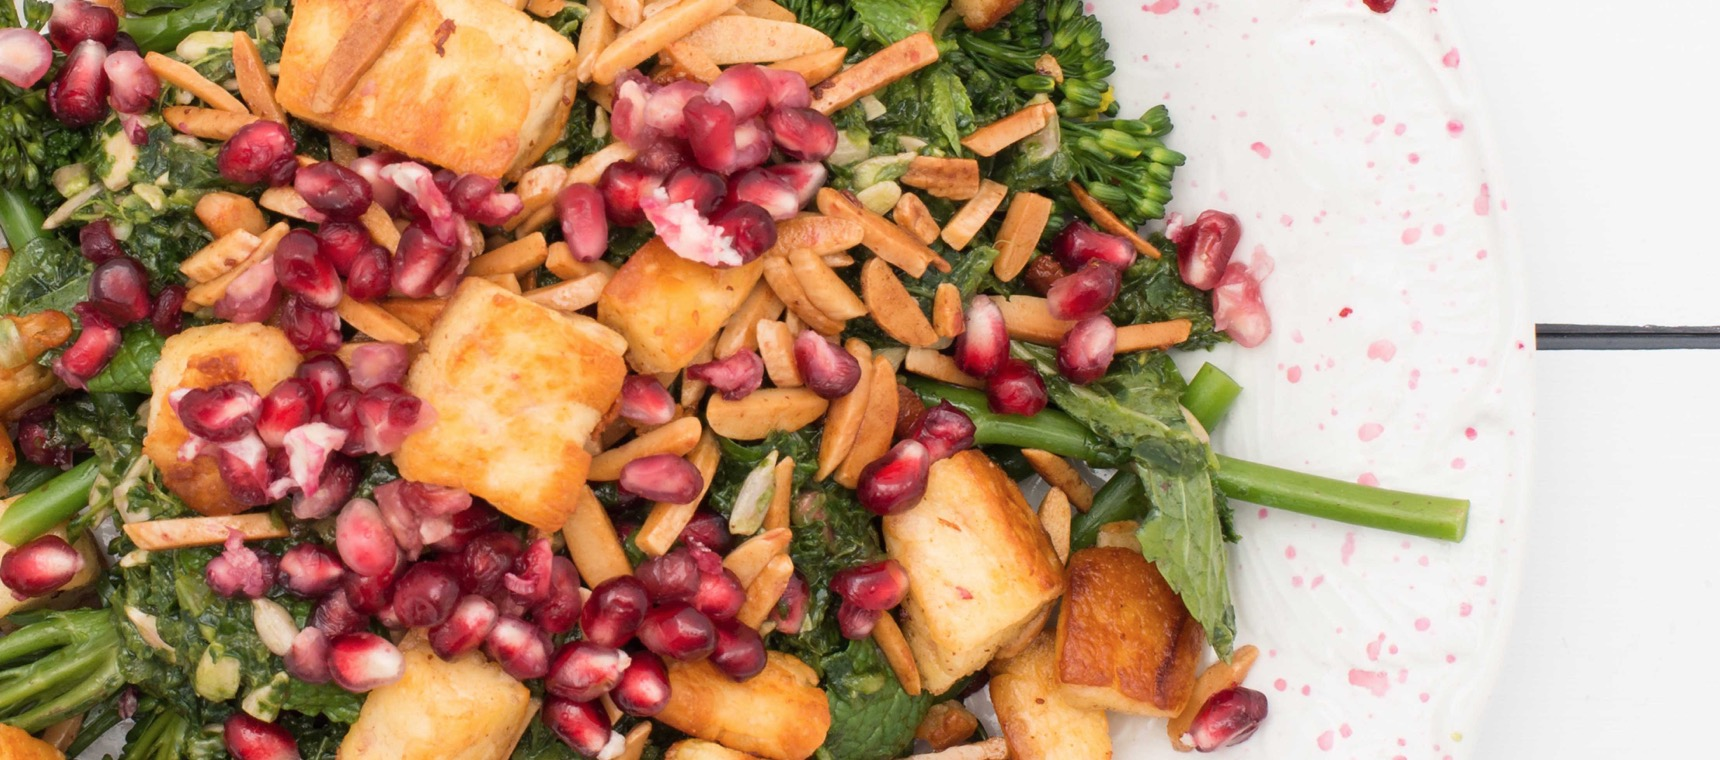 Pomegranate & Kale Salad with Haloumi